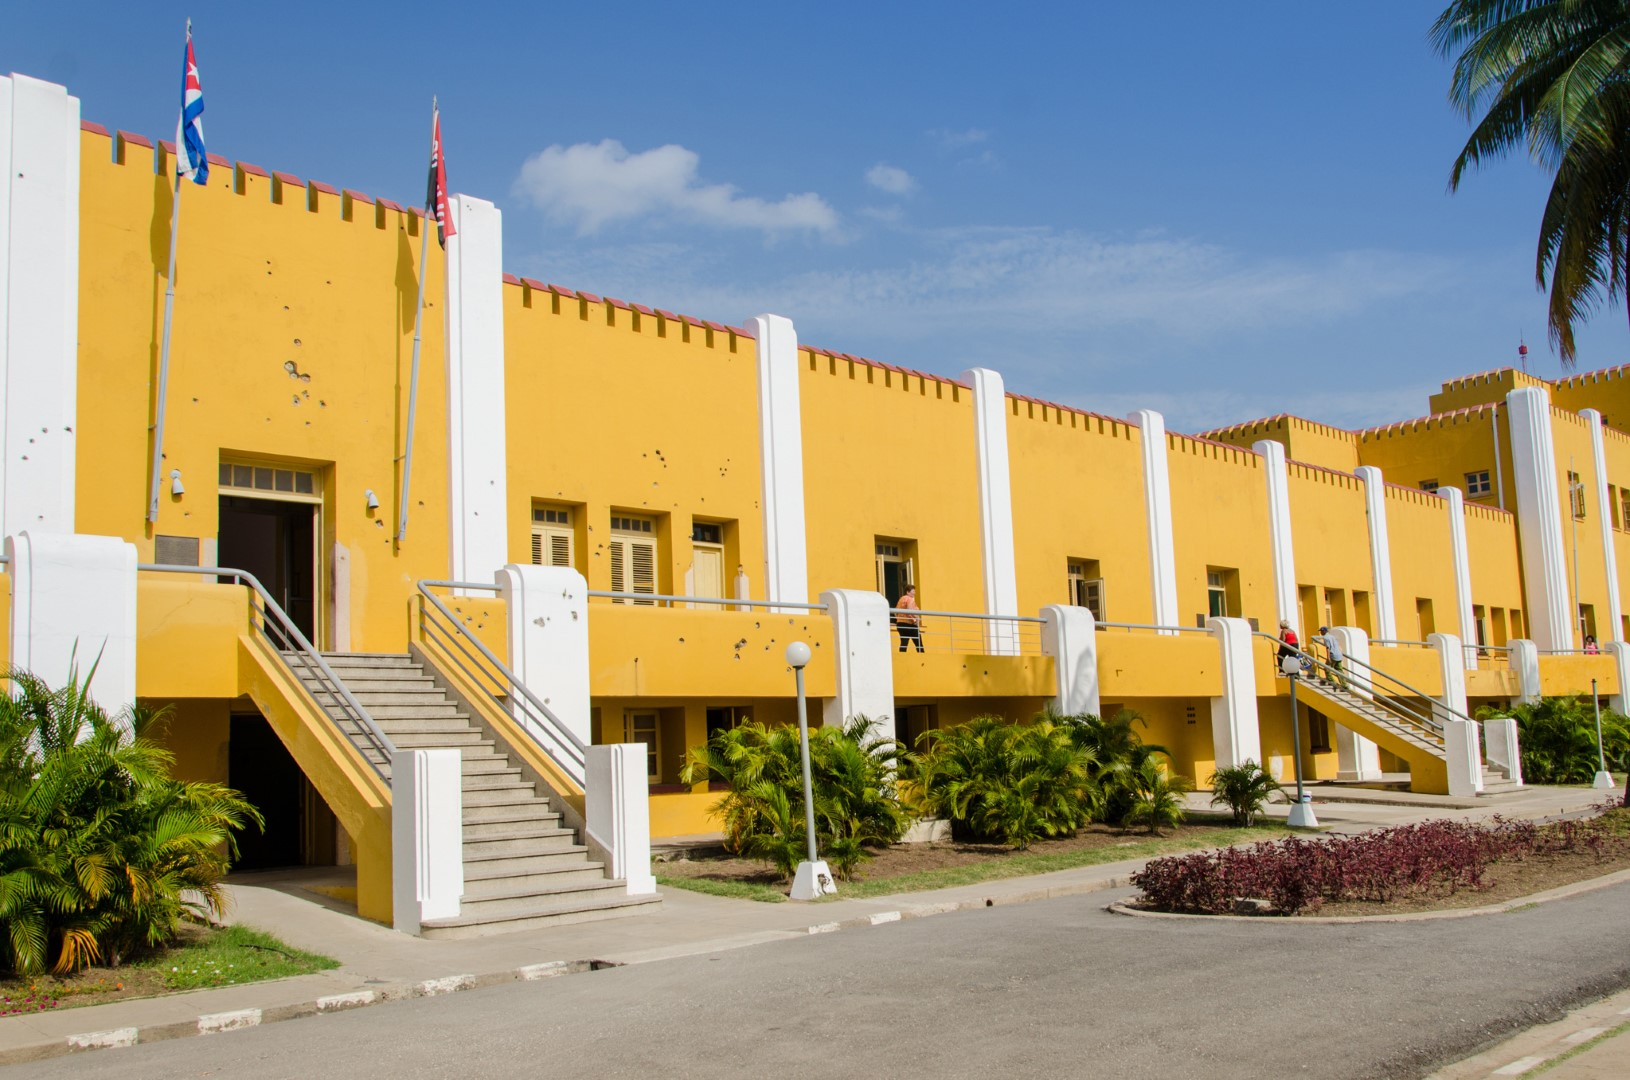 The Moncada Barracks Museum in Santiago de Cuba